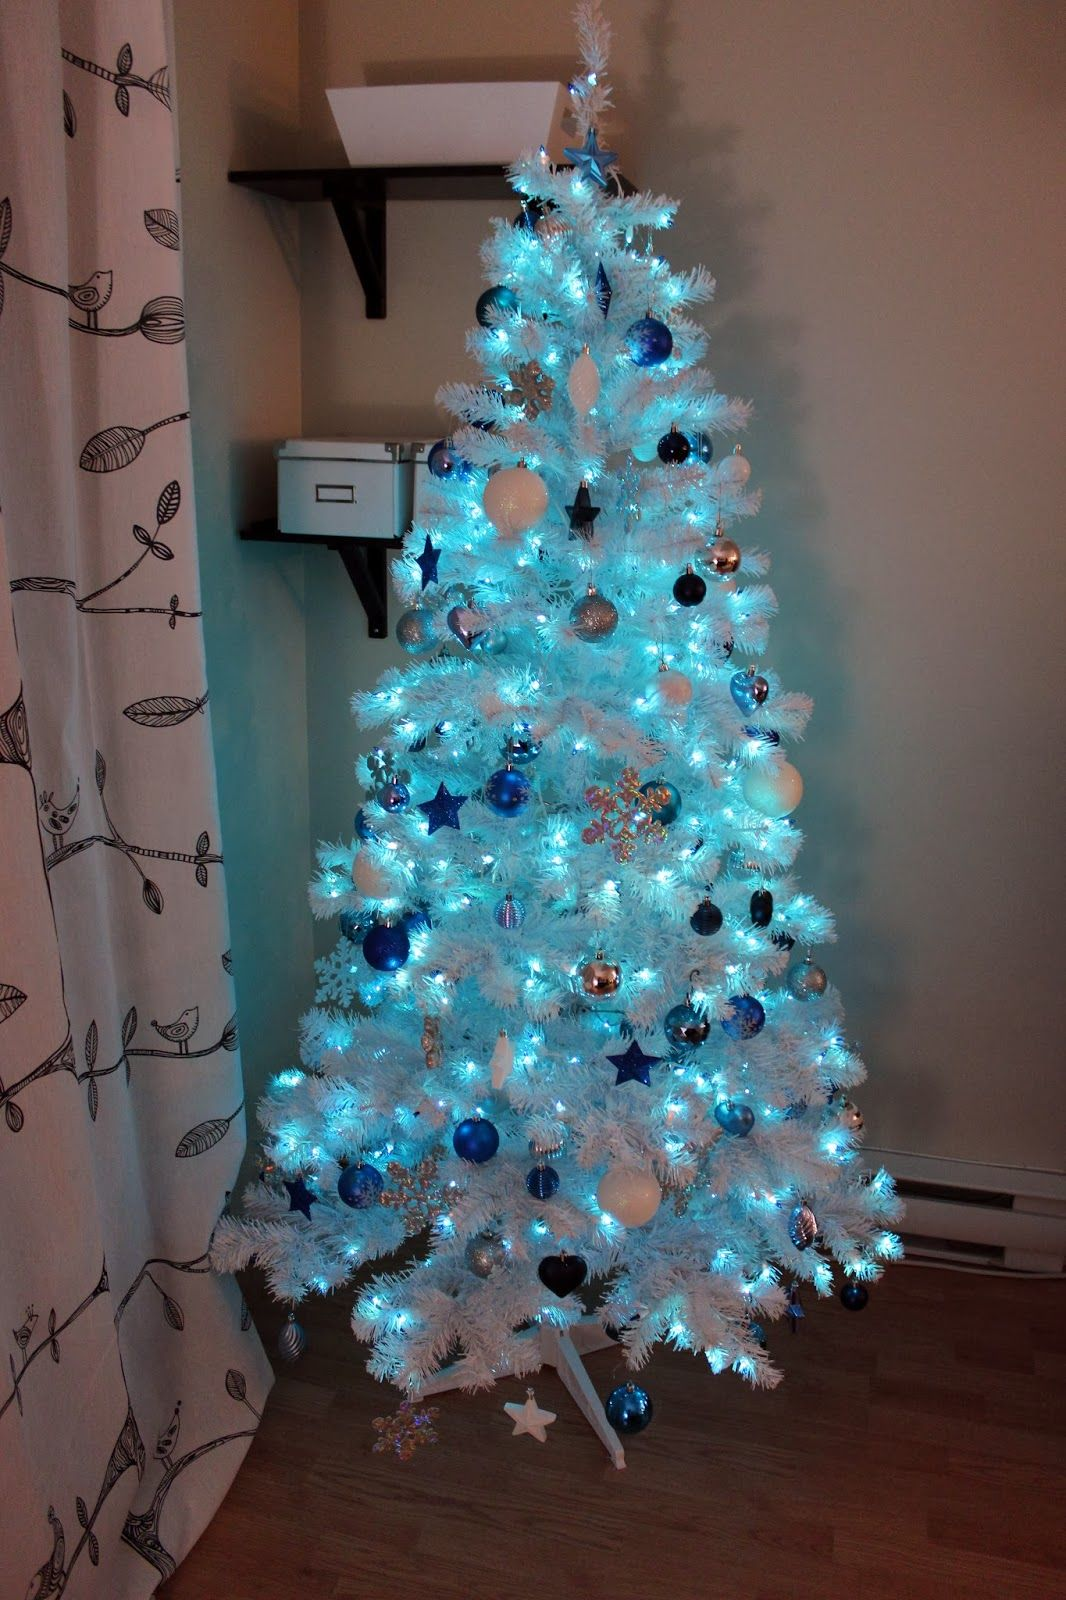 White christmas tree with blue and silver decorations - 34 Blue Christmas Tree Decorations Ideas